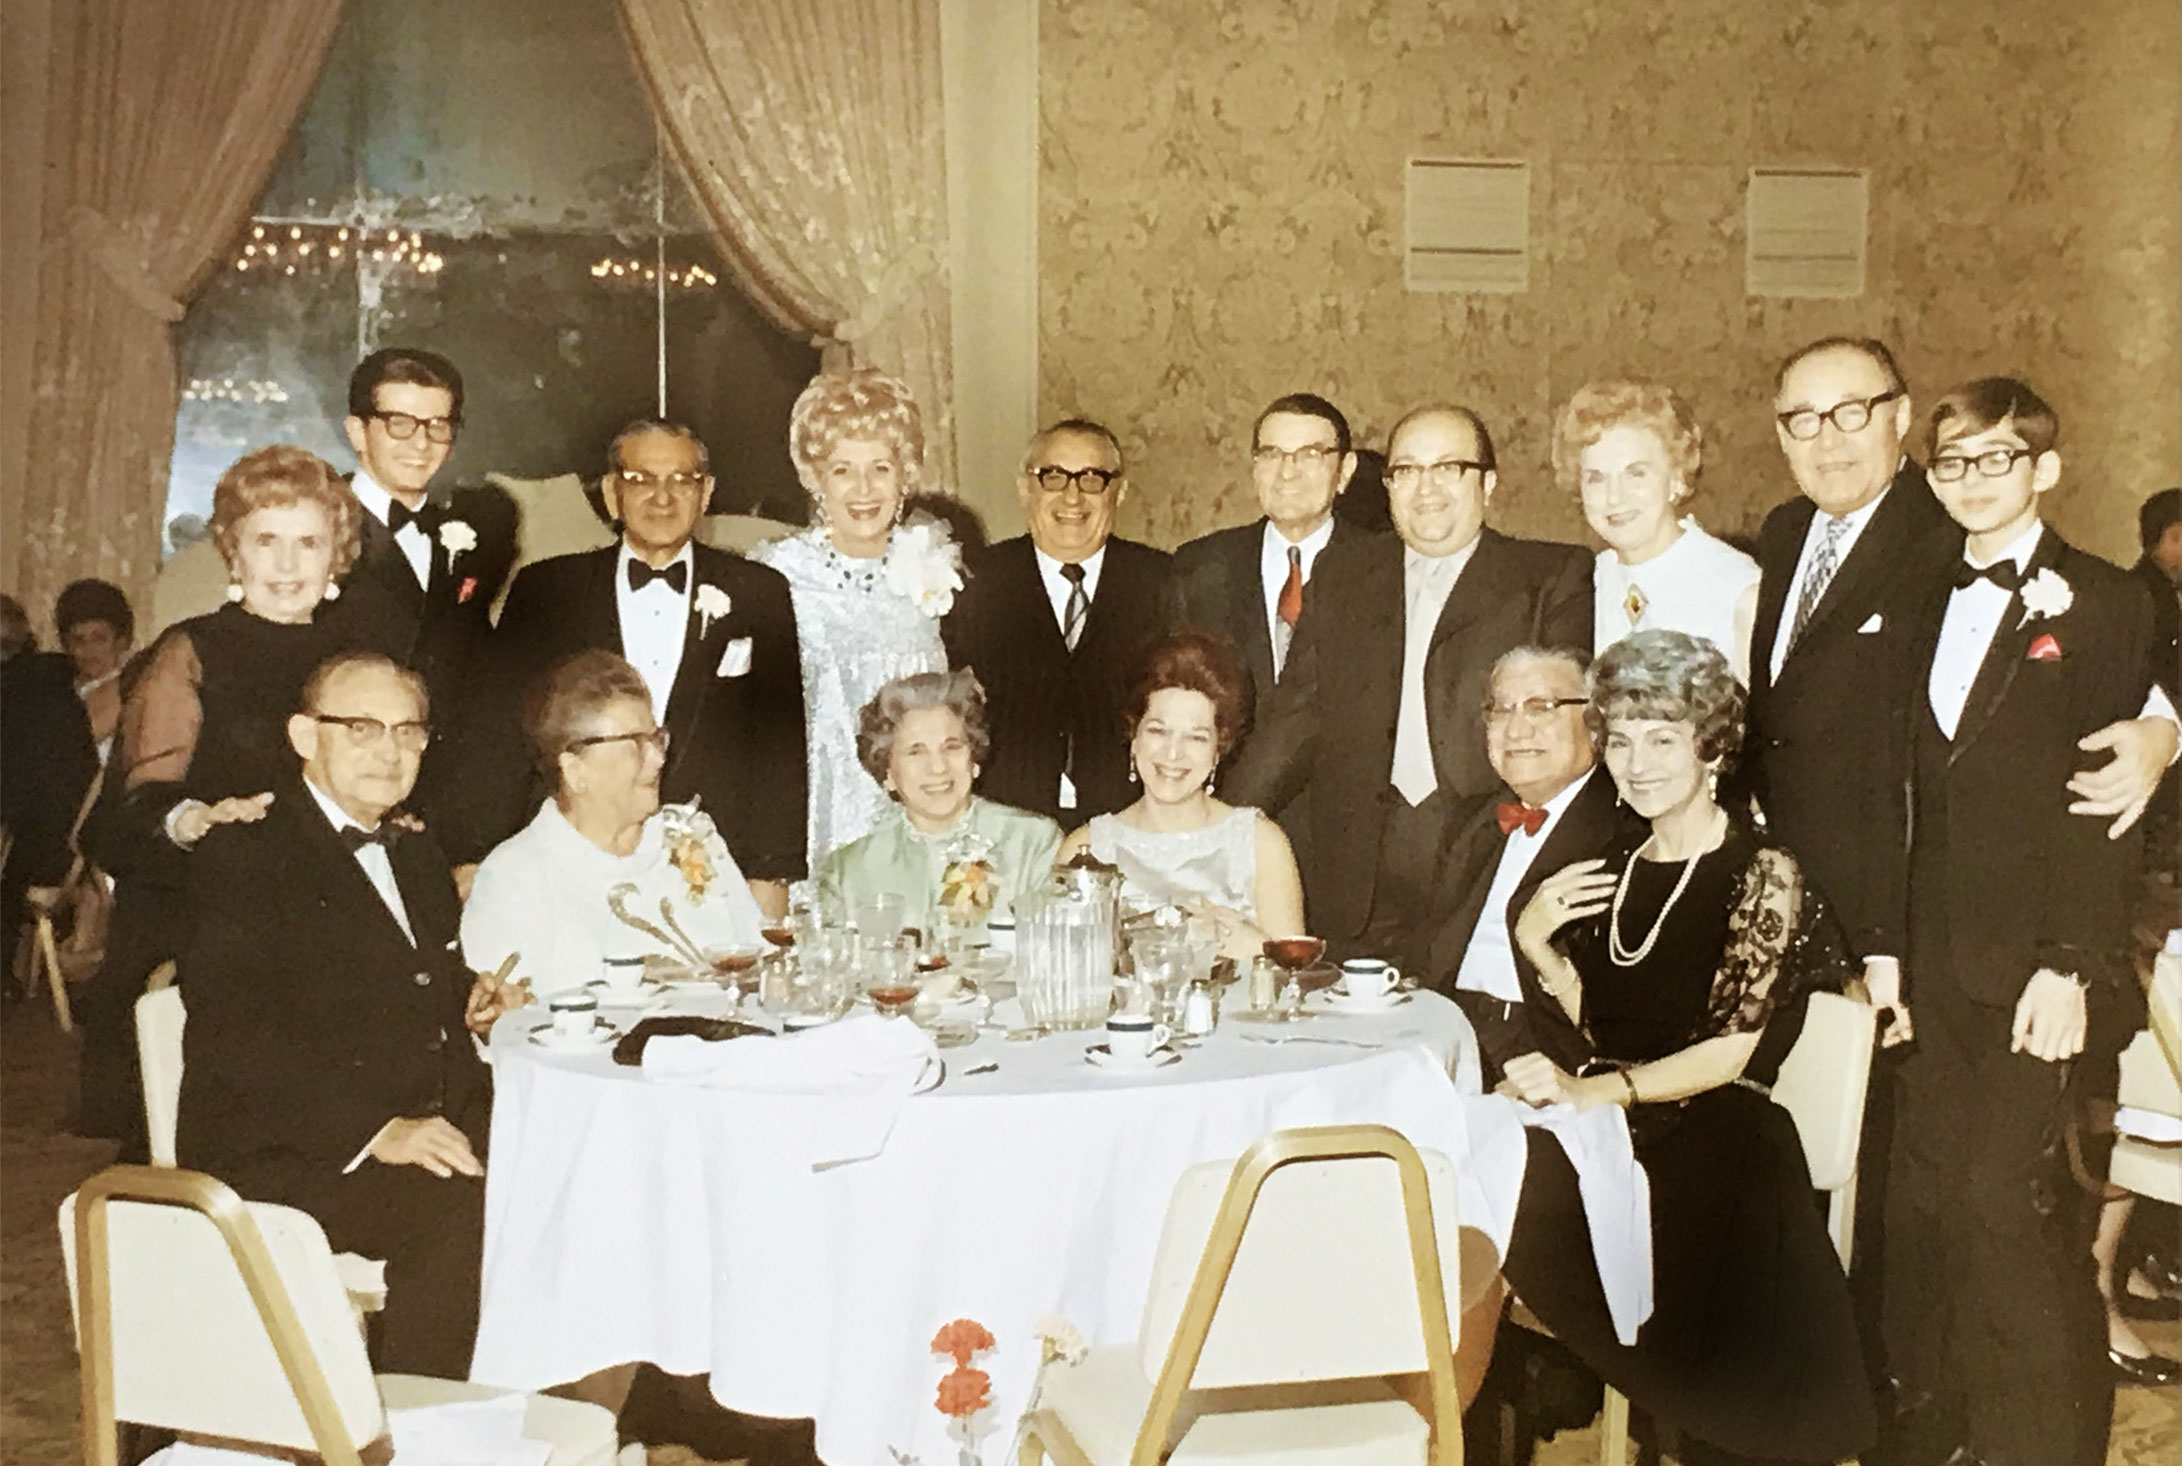 Photo of the Granata Family in 1971. Taken at Sportsman's Park in Cicero, Illinois. Peter C. Granata Sr. is back-row, 3rd from the left. Paul C. Ross is back row, center, 5th from the left. Sue Granata Ross, aged 60, is seated on the far right in Black Lace.